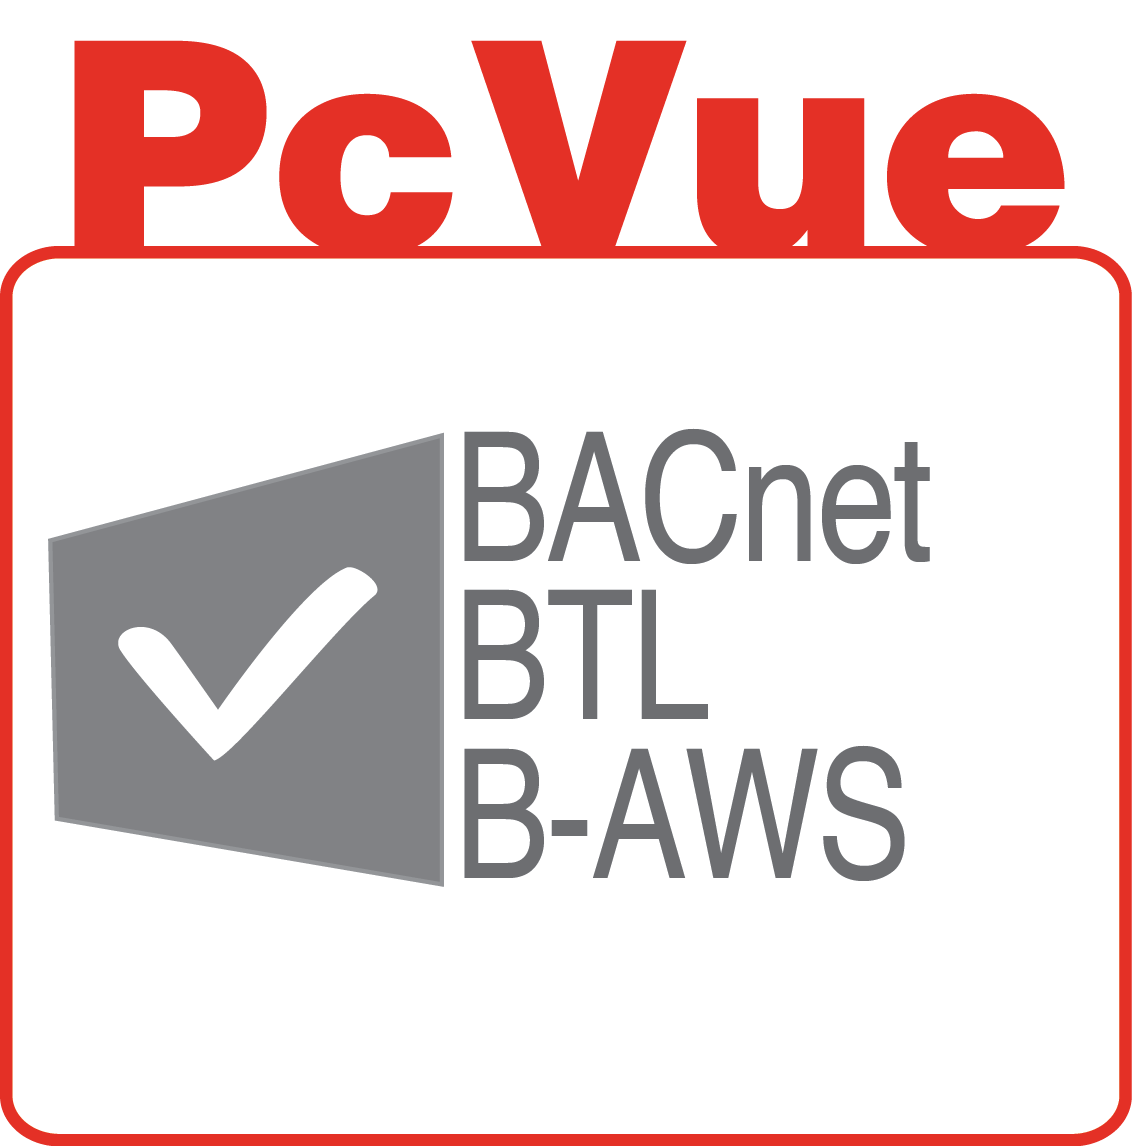 PcVue icon features bacnet btl aws